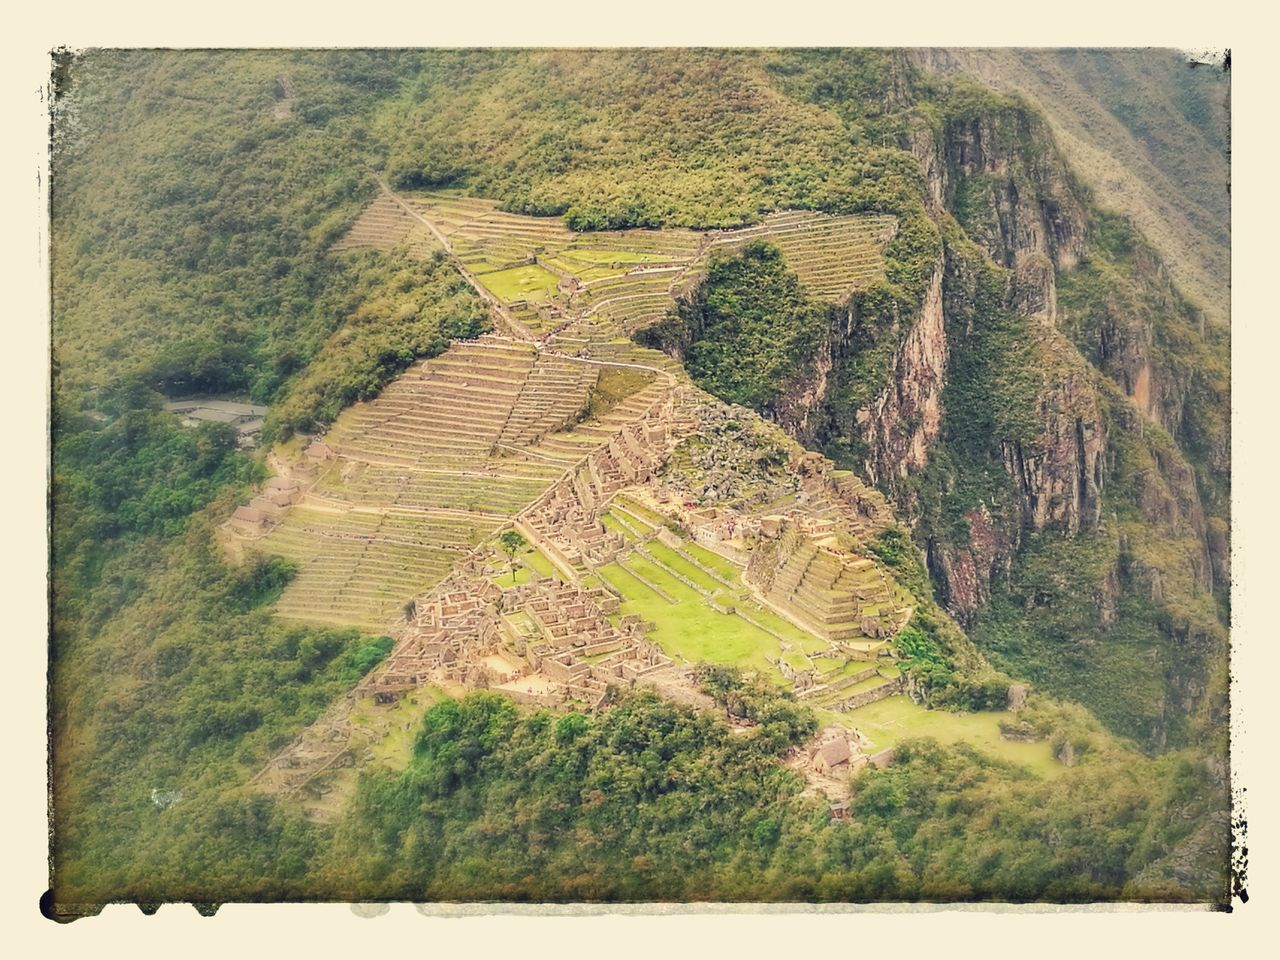 tranquil scene, tranquility, landscape, no people, day, nature, scenics, high angle view, outdoors, beauty in nature, history, ancient, green color, agriculture, tree, travel destinations, terraced field, rural scene, ancient civilization